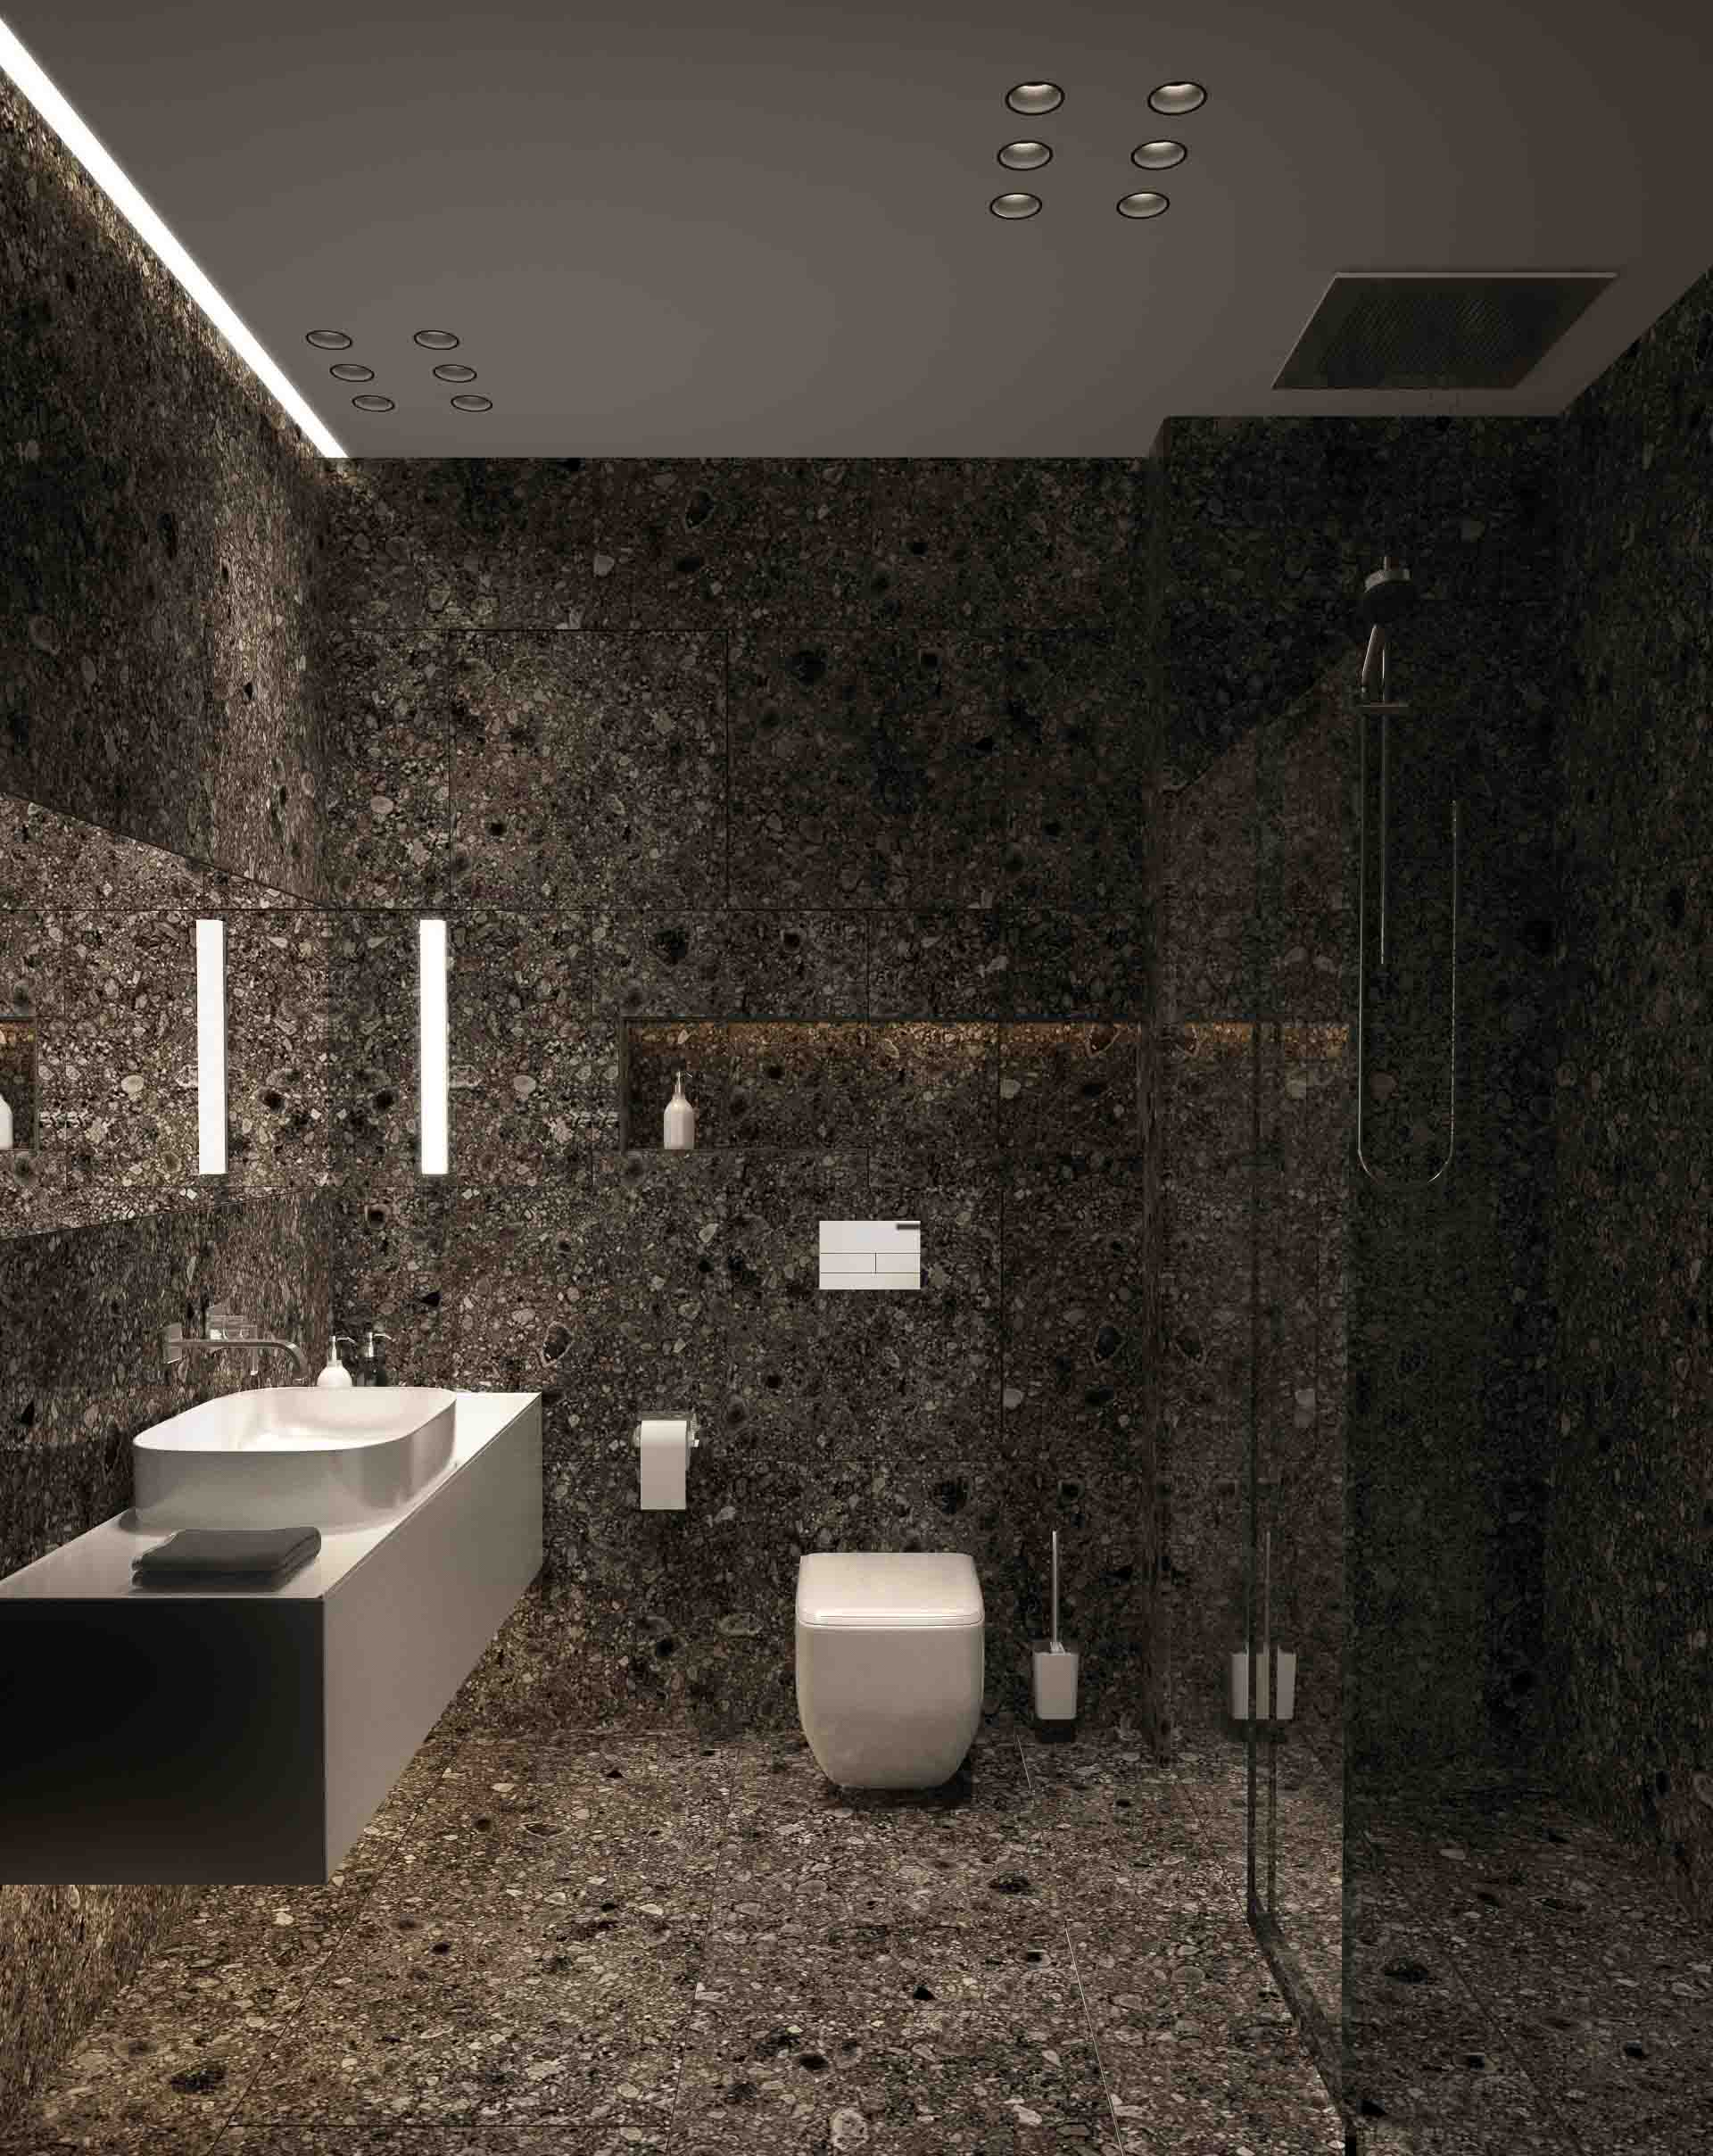 Bathroom interior design by Lera Bykova